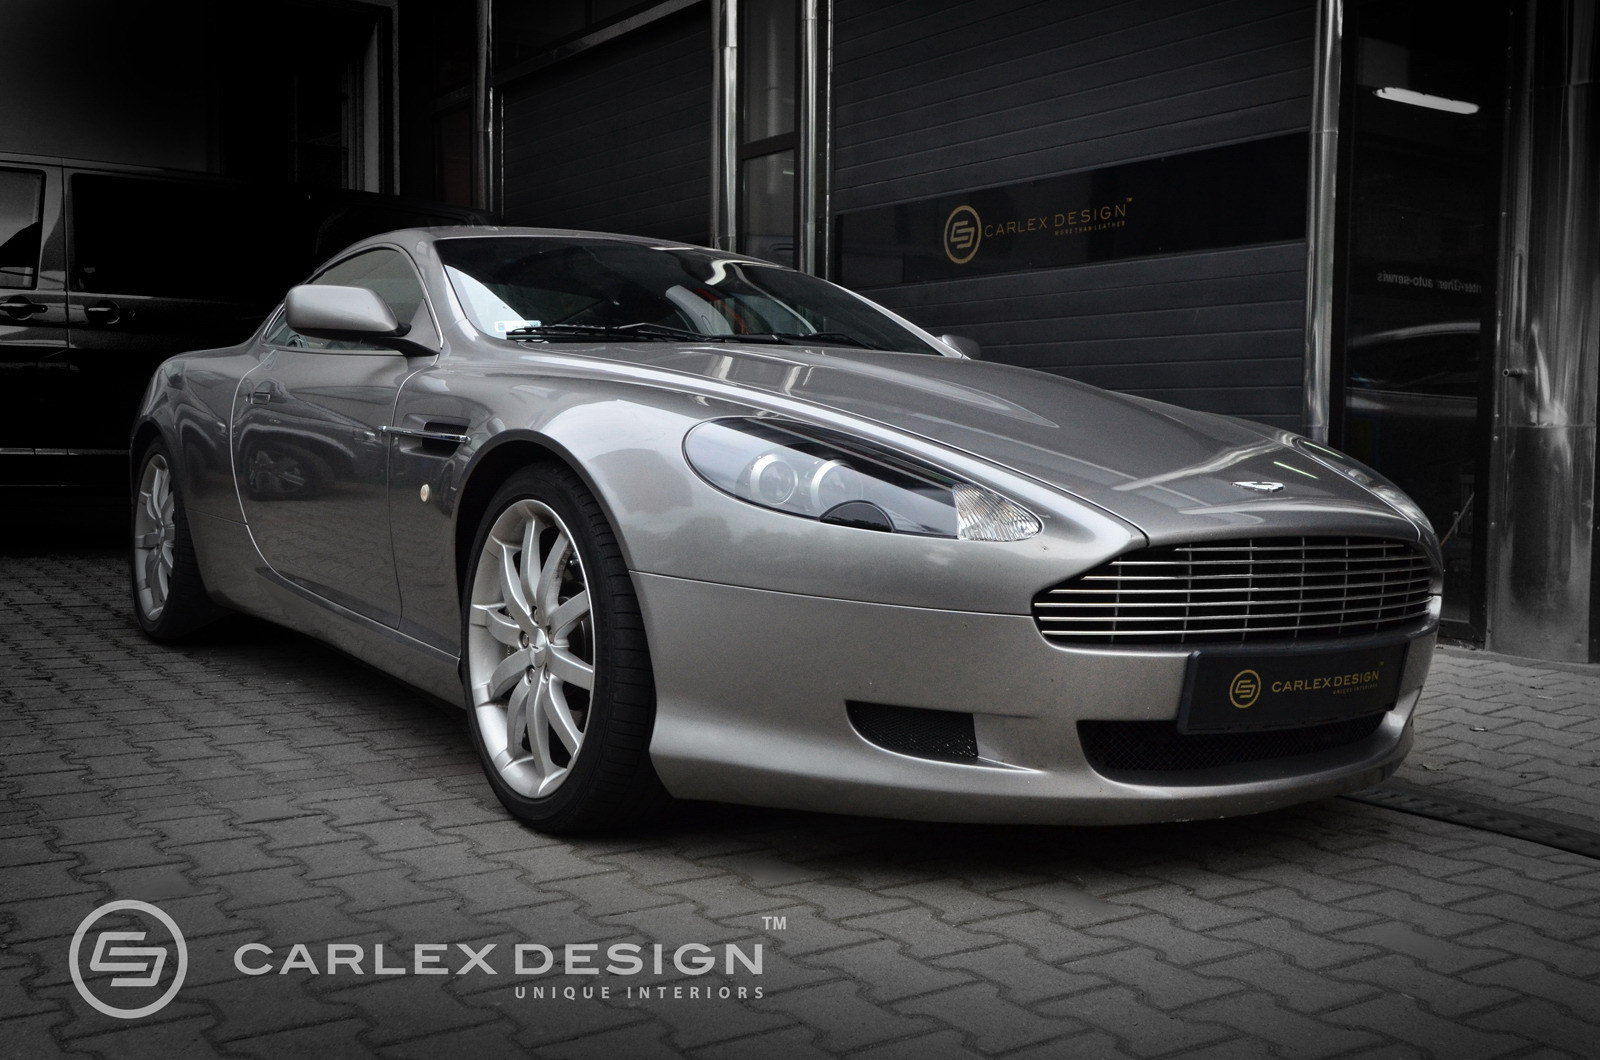 2014 aston martin db9 by carlex design review top speed. Black Bedroom Furniture Sets. Home Design Ideas